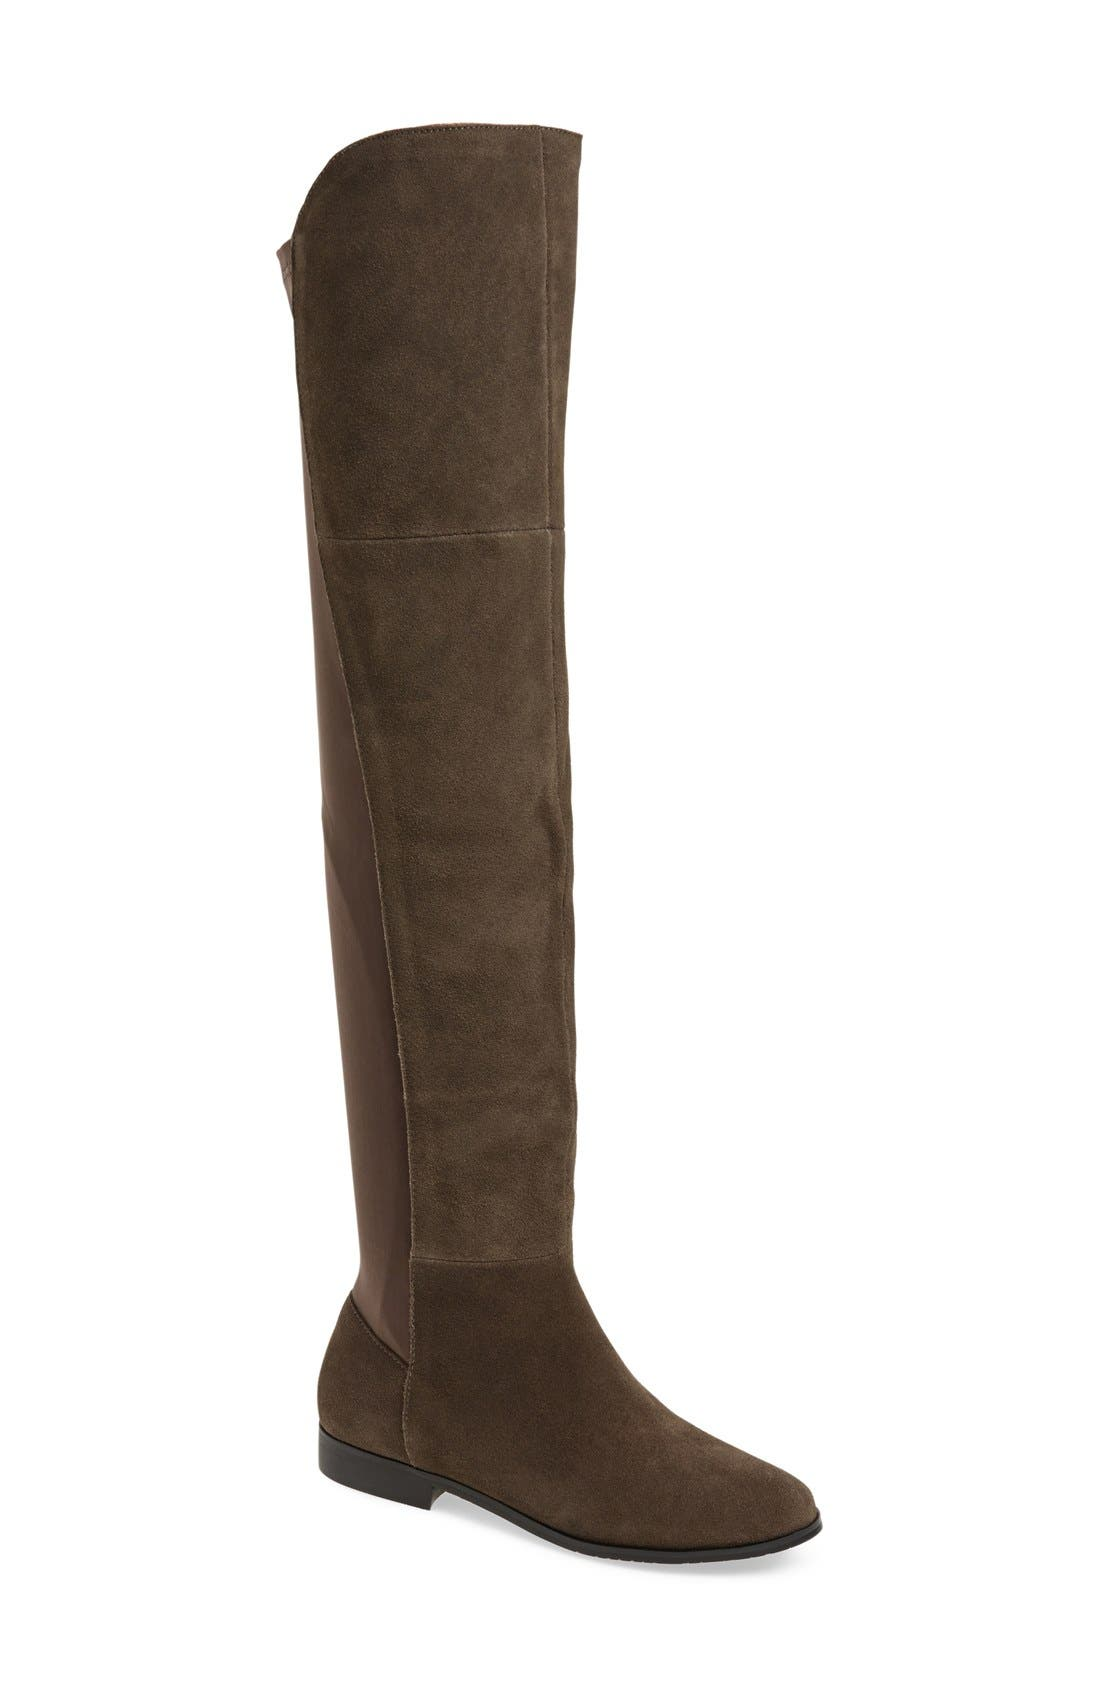 'Radiance' Over The Knee Boot, Main, color, 031